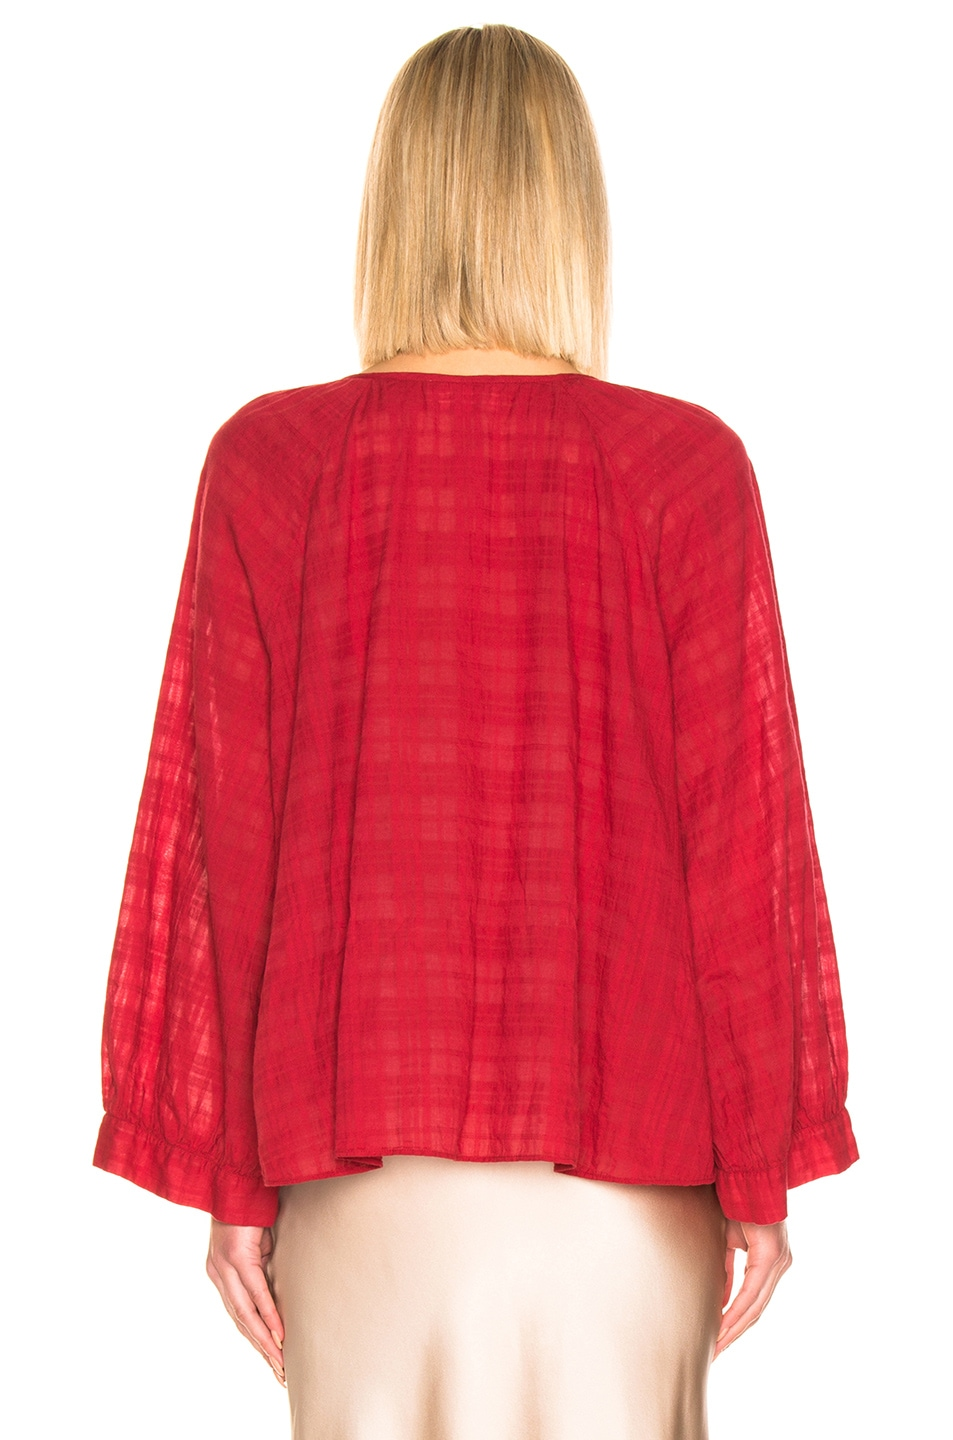 Image 3 of NILI LOTAN Aliva Top in Sheer Red Plaid